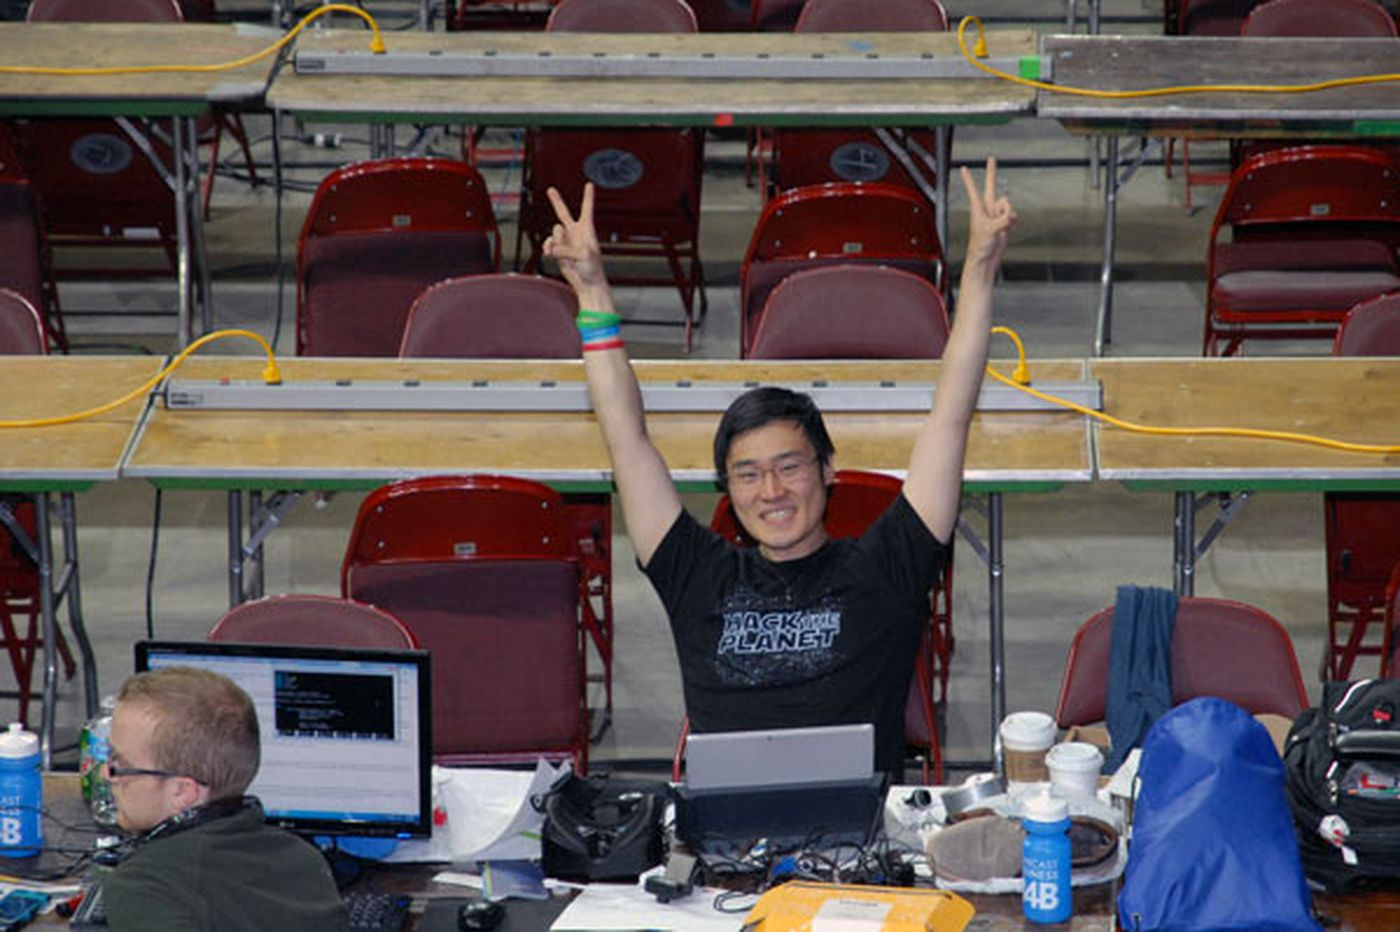 Student computer whizzes compete at PennApps Hackathon